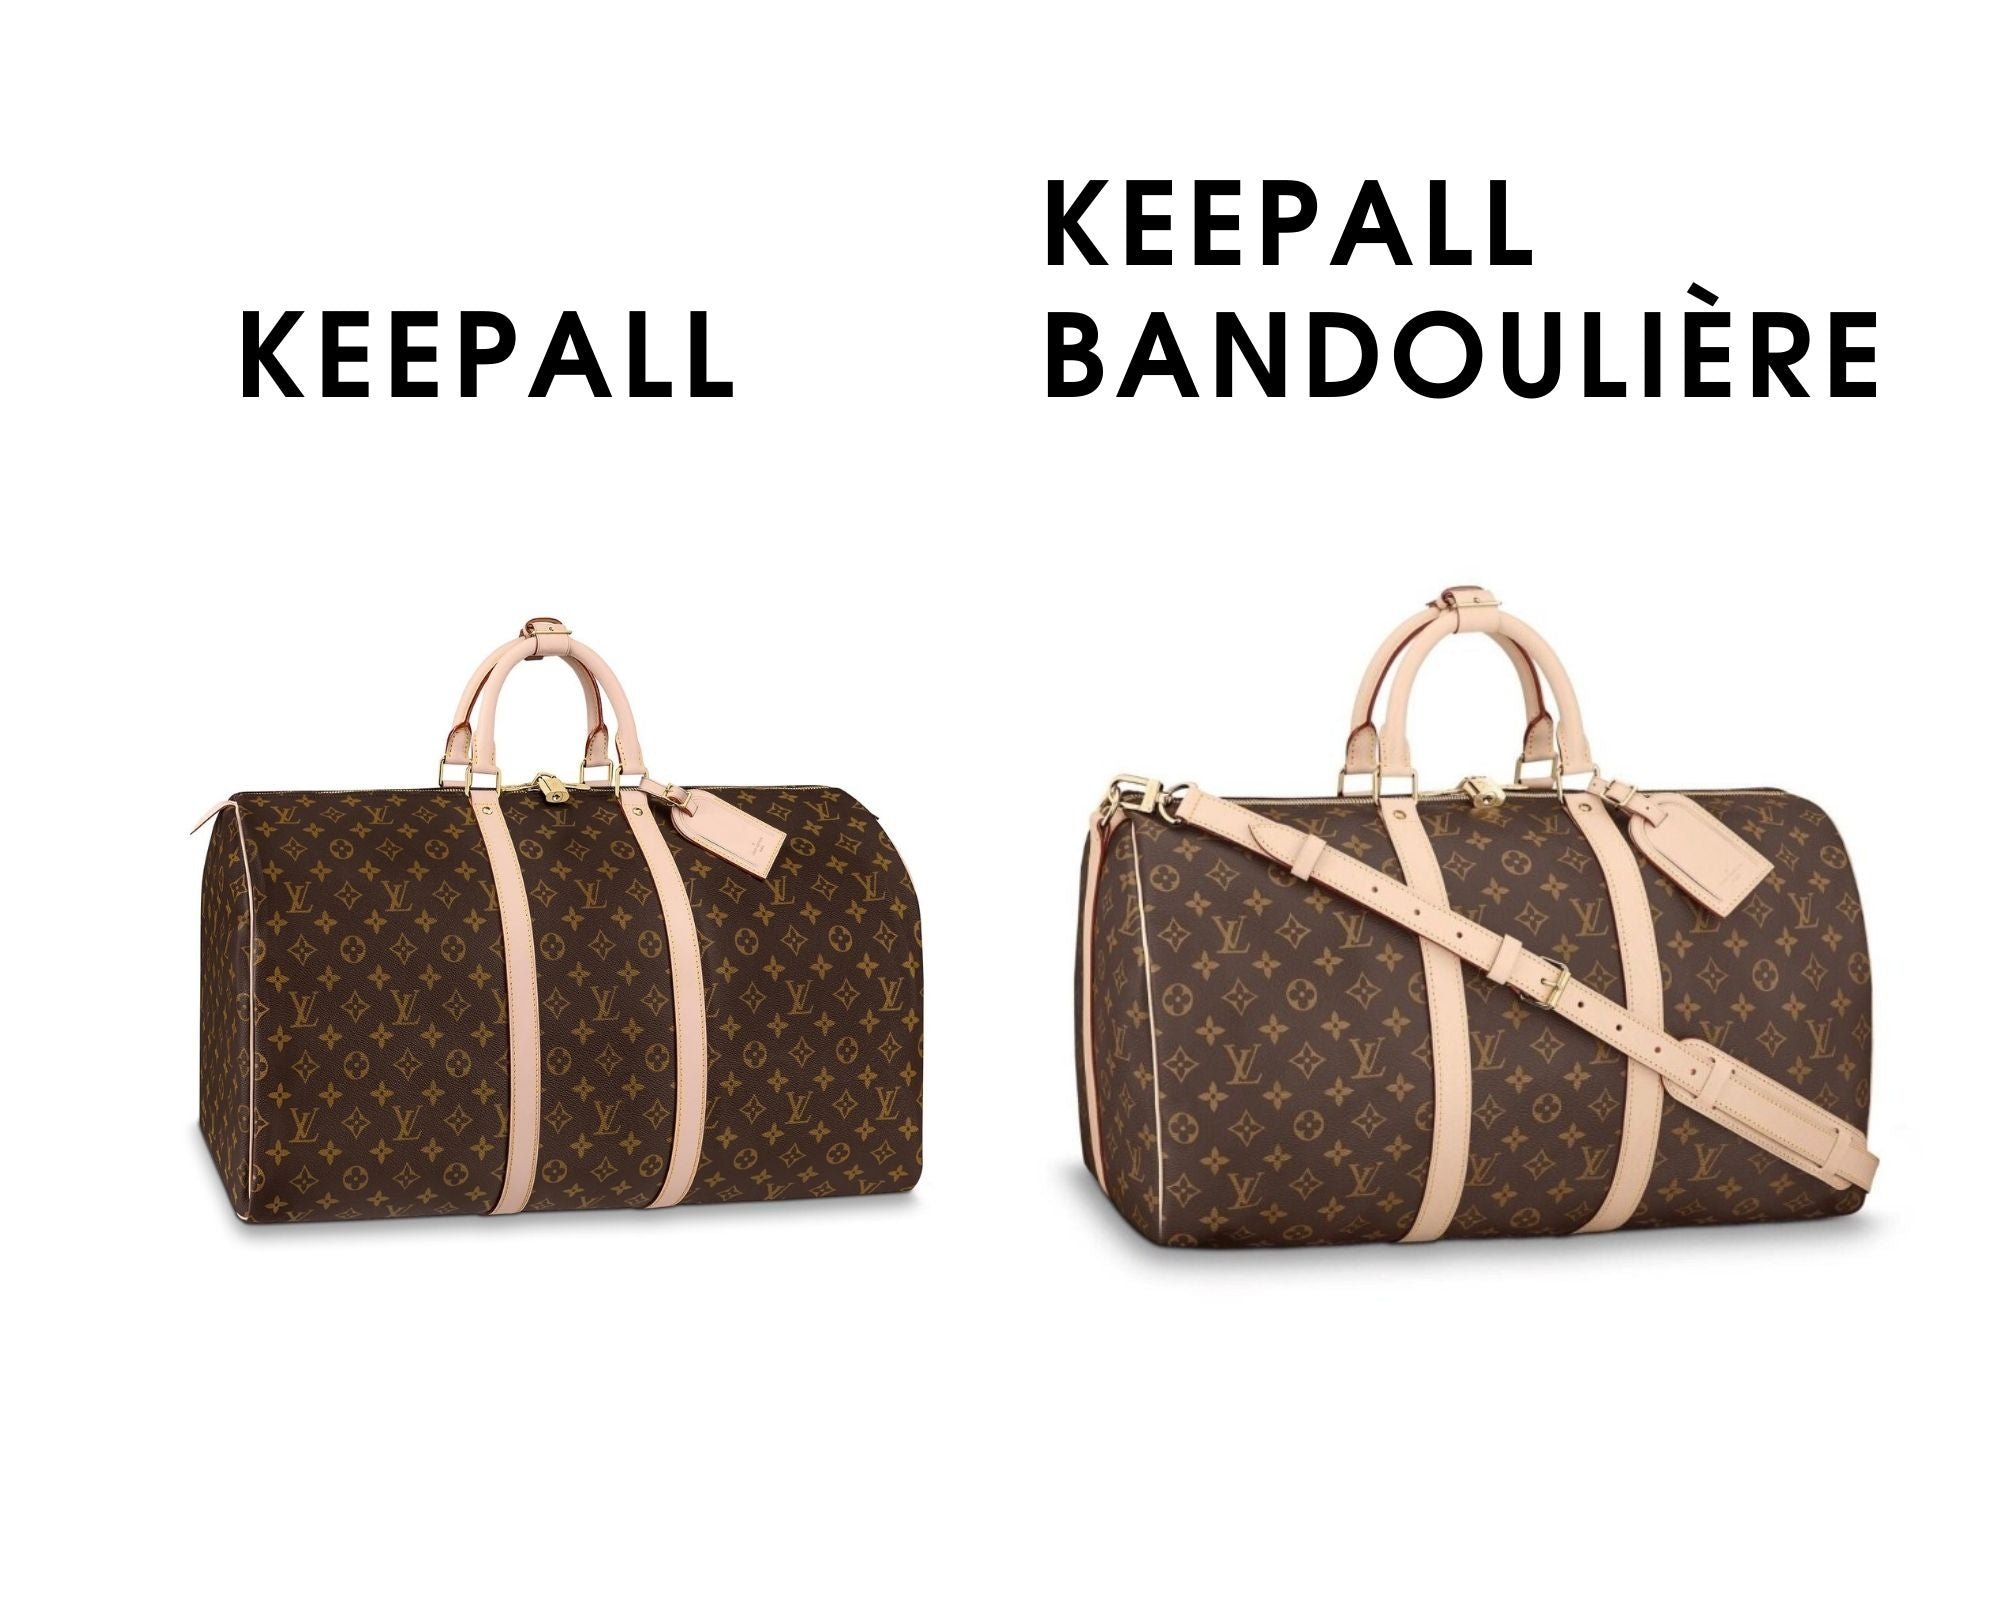 What Size Louis Vuitton Keepall Should I get? Keepall vs Keepall badouliere